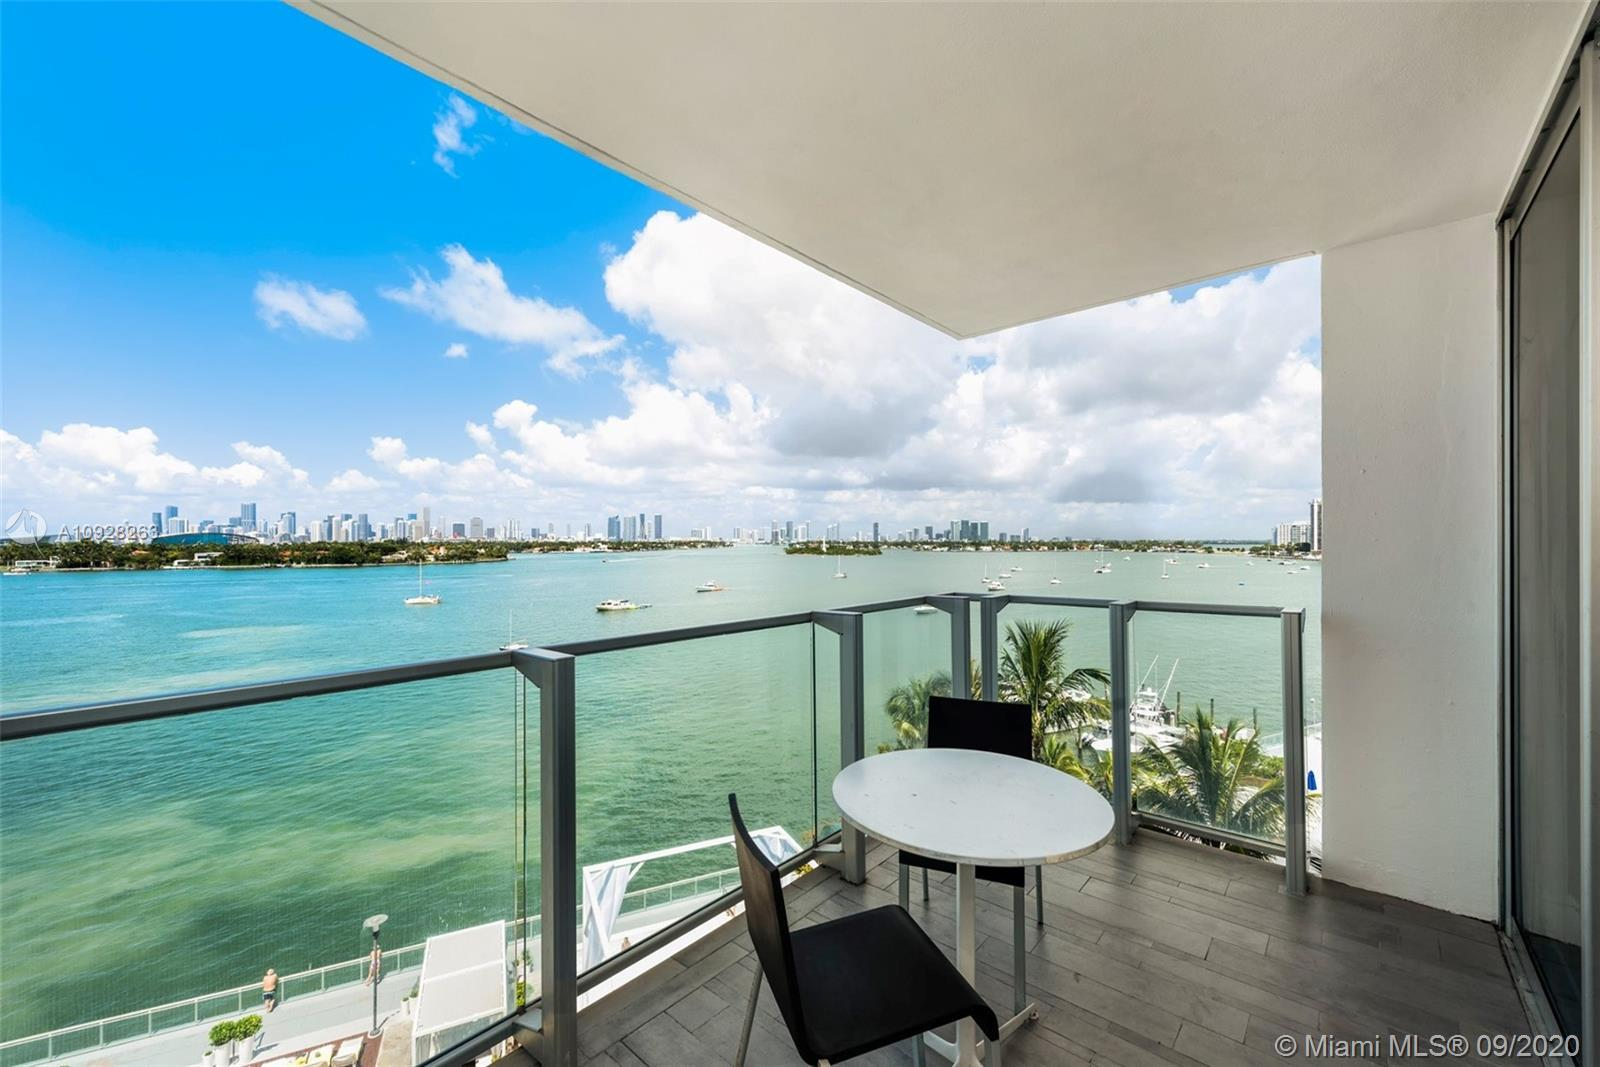 Enjoy a pampered hotel lifestyle in the best line at Mondrian! This 2BD/2BA residence features magic